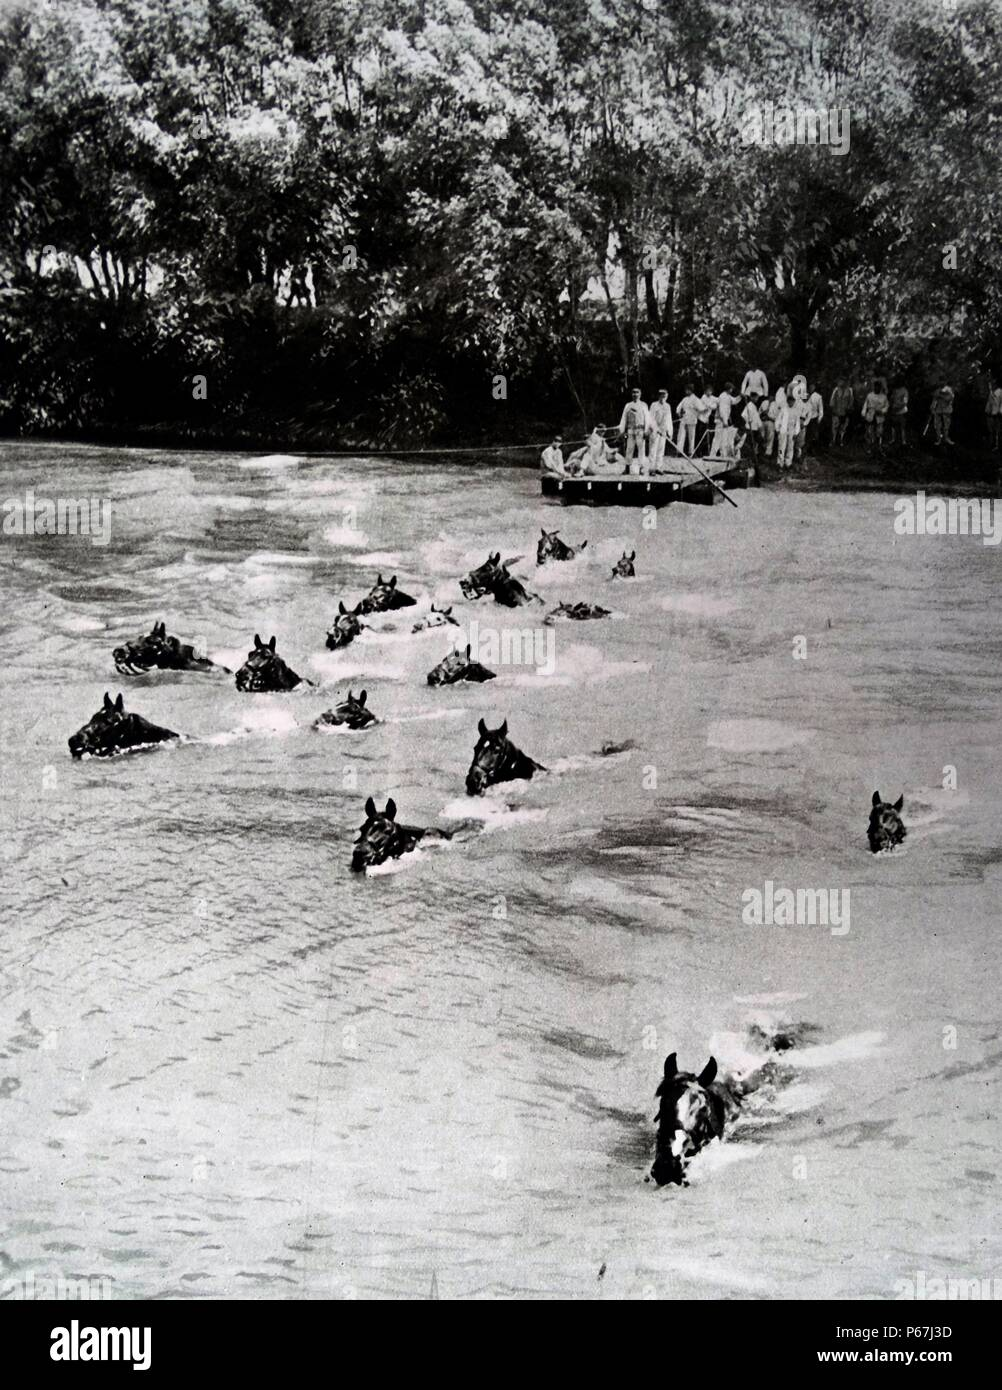 French engineers enable the crossing of military men and horses across a river during world war one - Stock Image